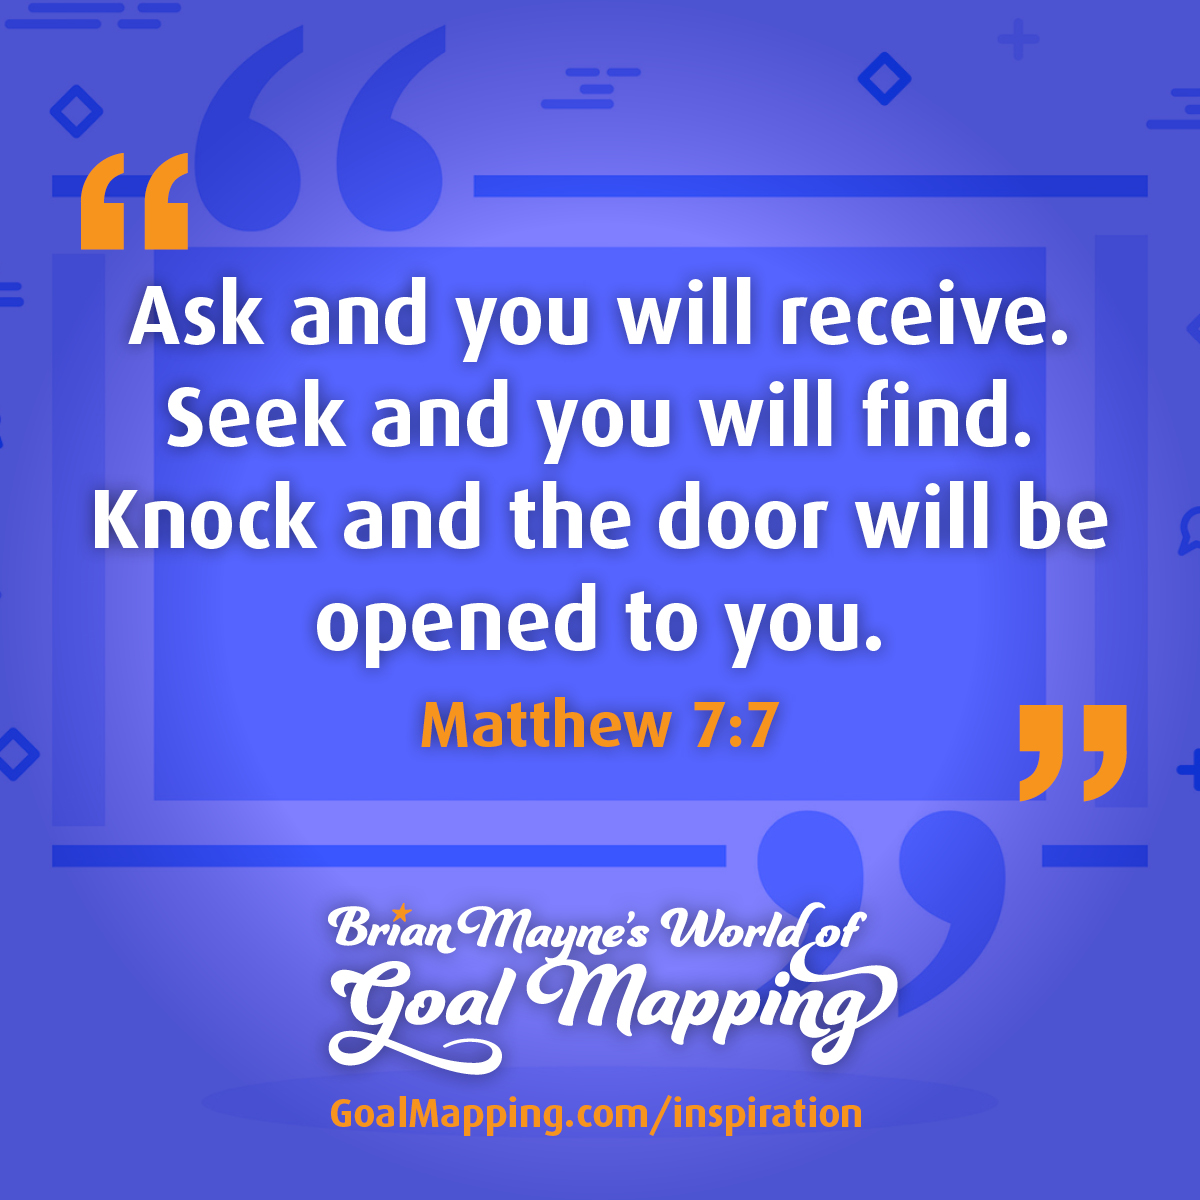 """""""Ask and you will receive. Seek and you will find. Knock and the door will be opened to you."""" Matthew 7:7"""